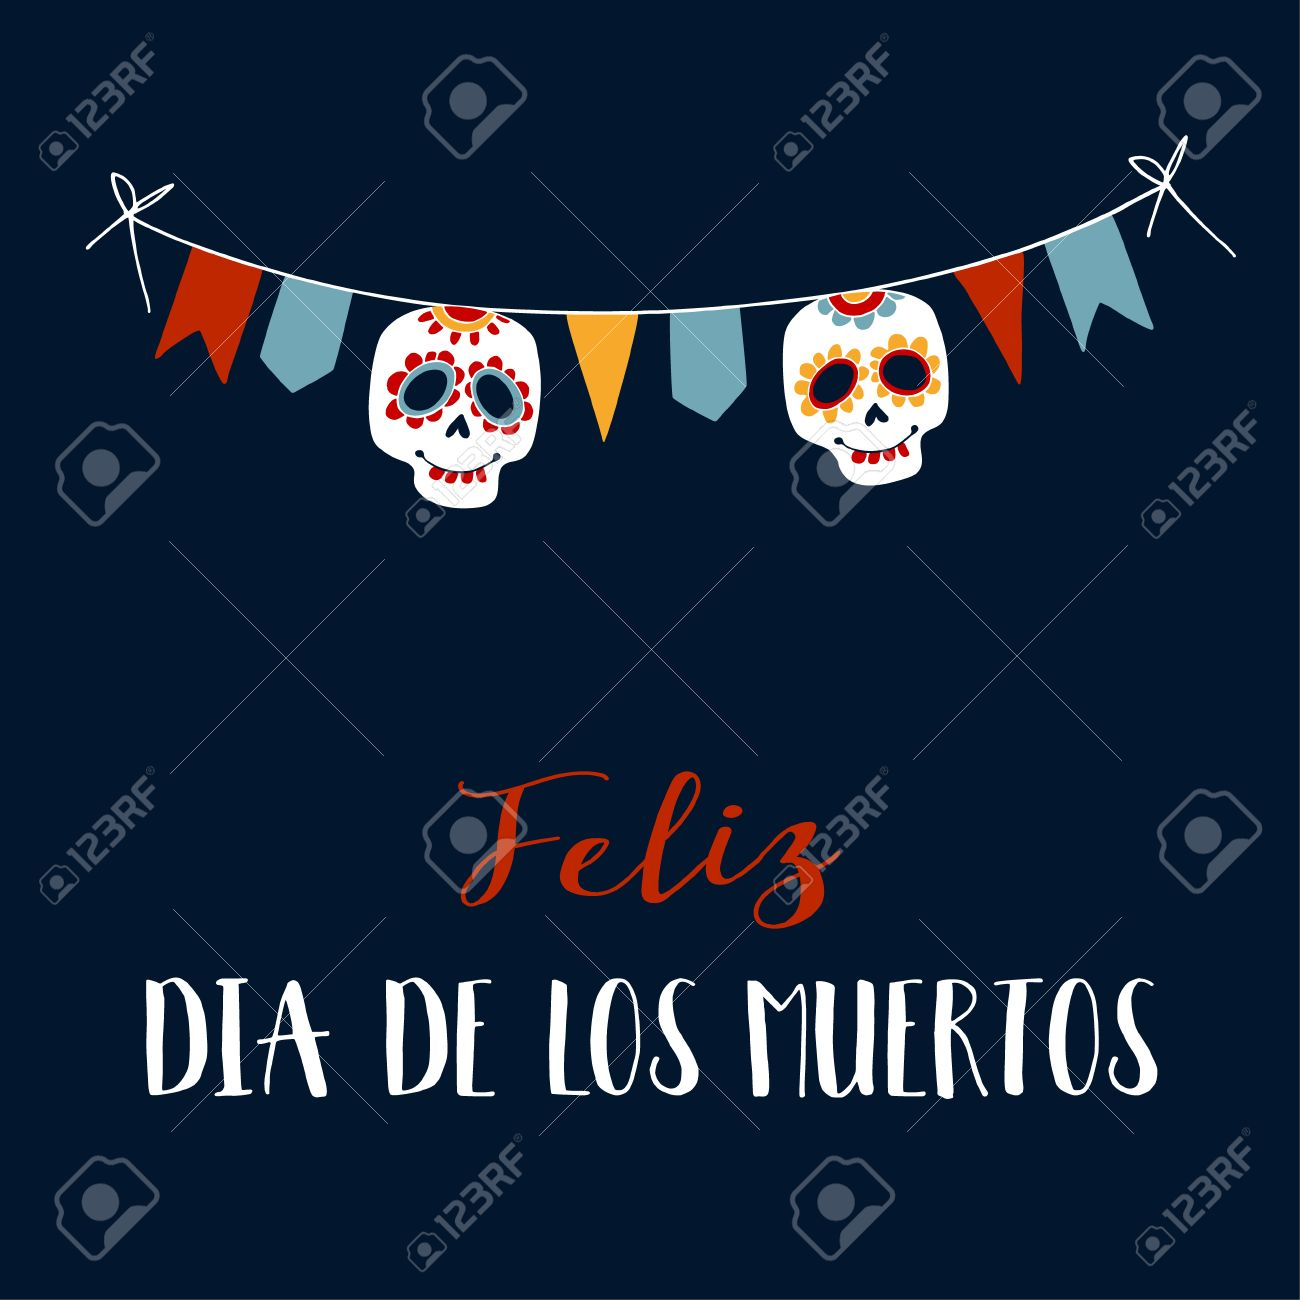 Feliz Dia de los Muertos greeting card, invitation. Mexican Day of the Dead. String decoration with party flags, ornametal sugar sculls. Hand drawn vector illustration, background. - 62180094